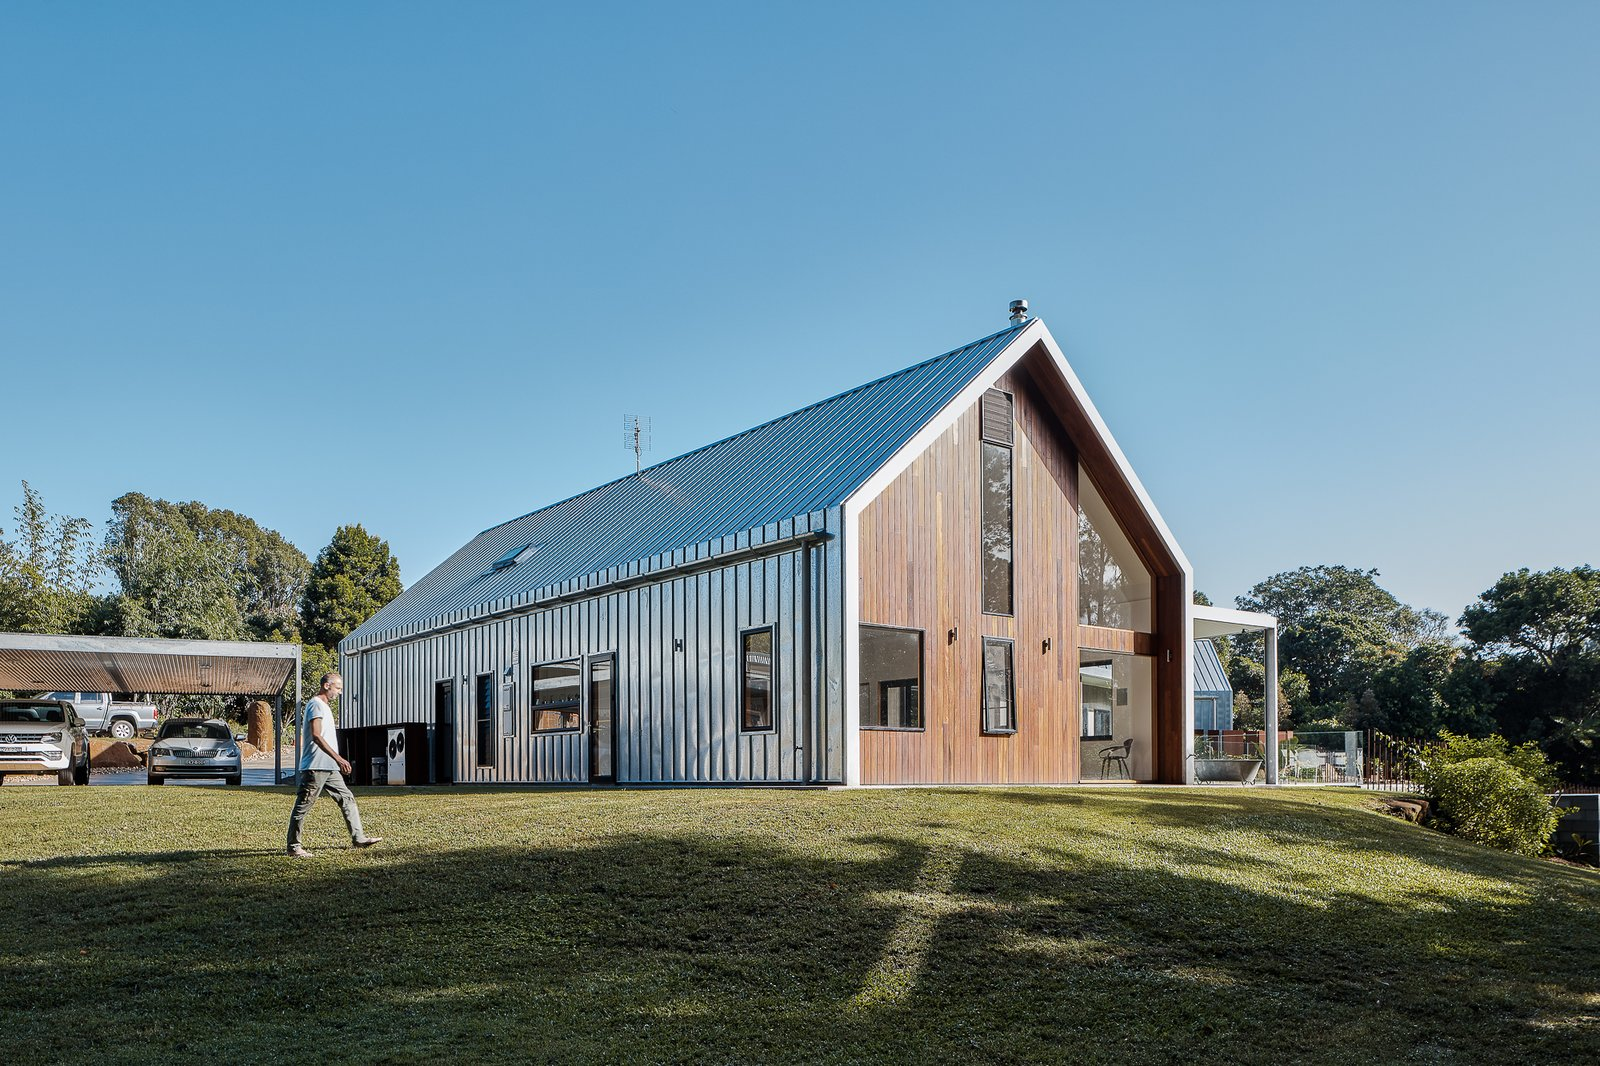 Exterior, Gable RoofLine, Metal Roof Material, House Building Type, Wood Siding Material, and Metal Siding Material A car port same the same galvanized metal roof as the house.  Photo 8 of 19 in Two Barn-Like Volumes Make Up This Low-Maintenance Australian Home